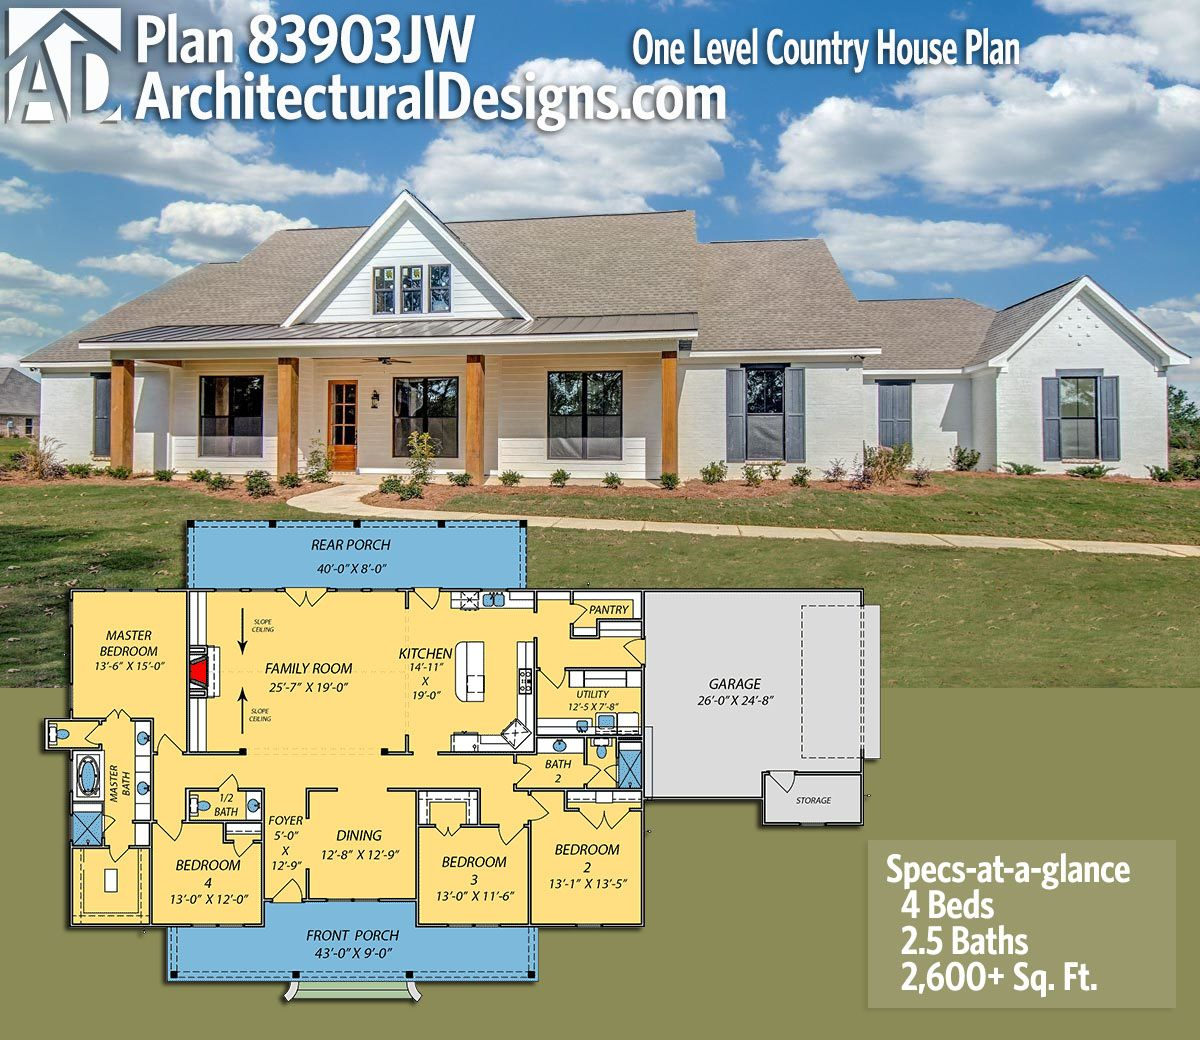 Plan 83903jw one level country house plan architectural for Architectural design plans